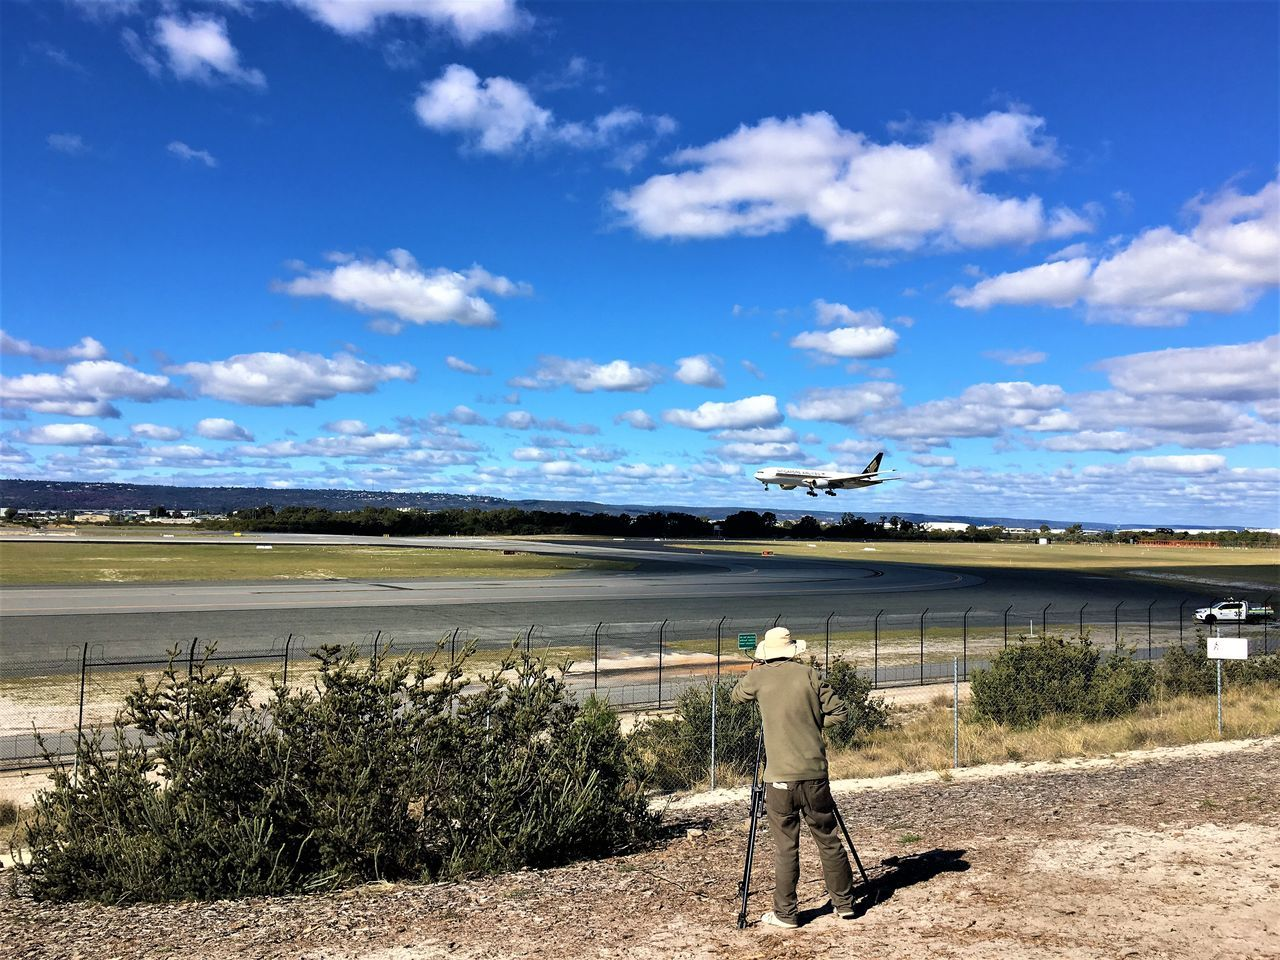 Quantas Hobbyphotography Hobby Transportation People Australia Real People Cloud - Sky Outdoors Flying Plane Spotting Air Vehicle One Person Airplane Sky Day Perth Airport Landing Capture The Moment Spotting Rear View Photography Enthusiast Plane Airport